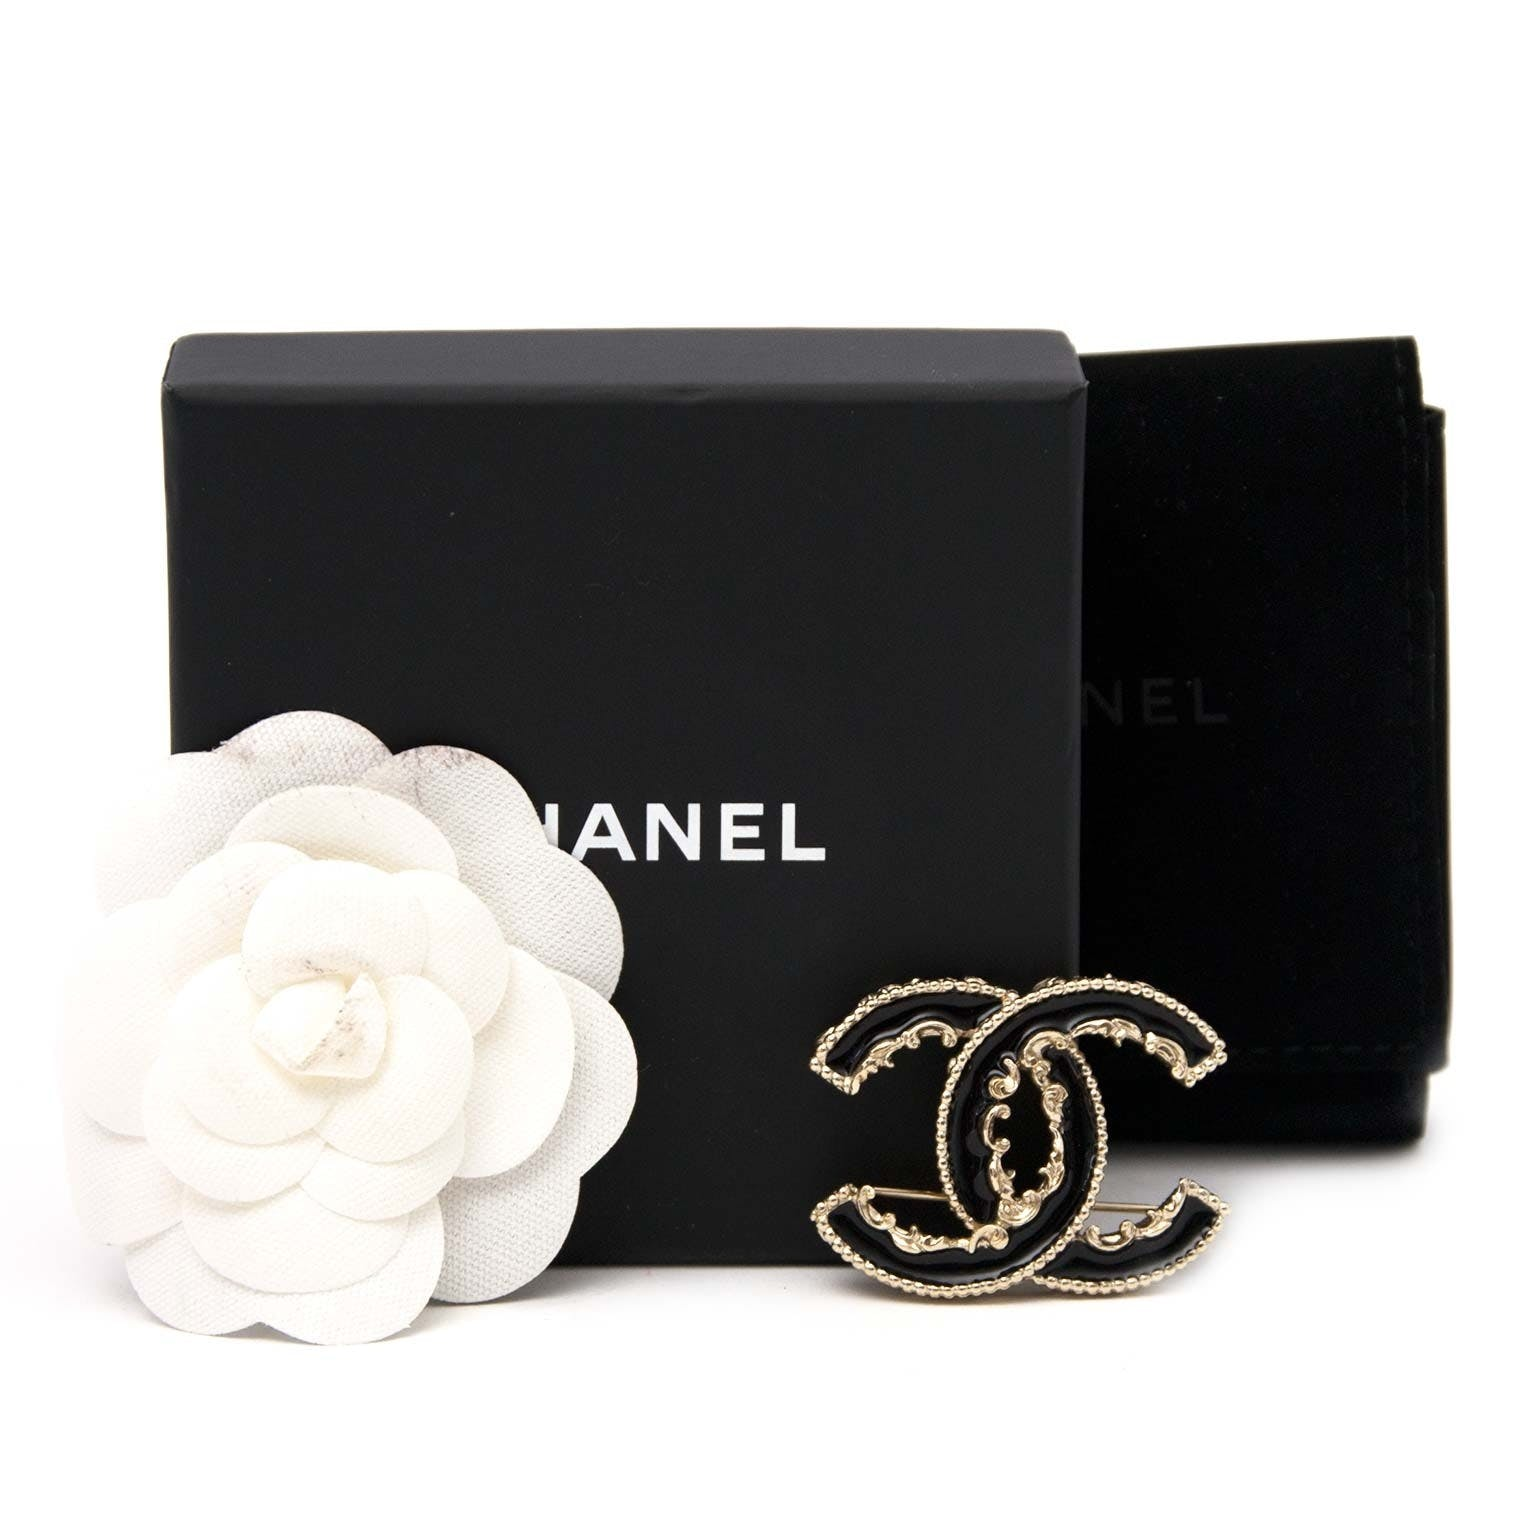 THE CHANEL CLASSIC CC BROOCH